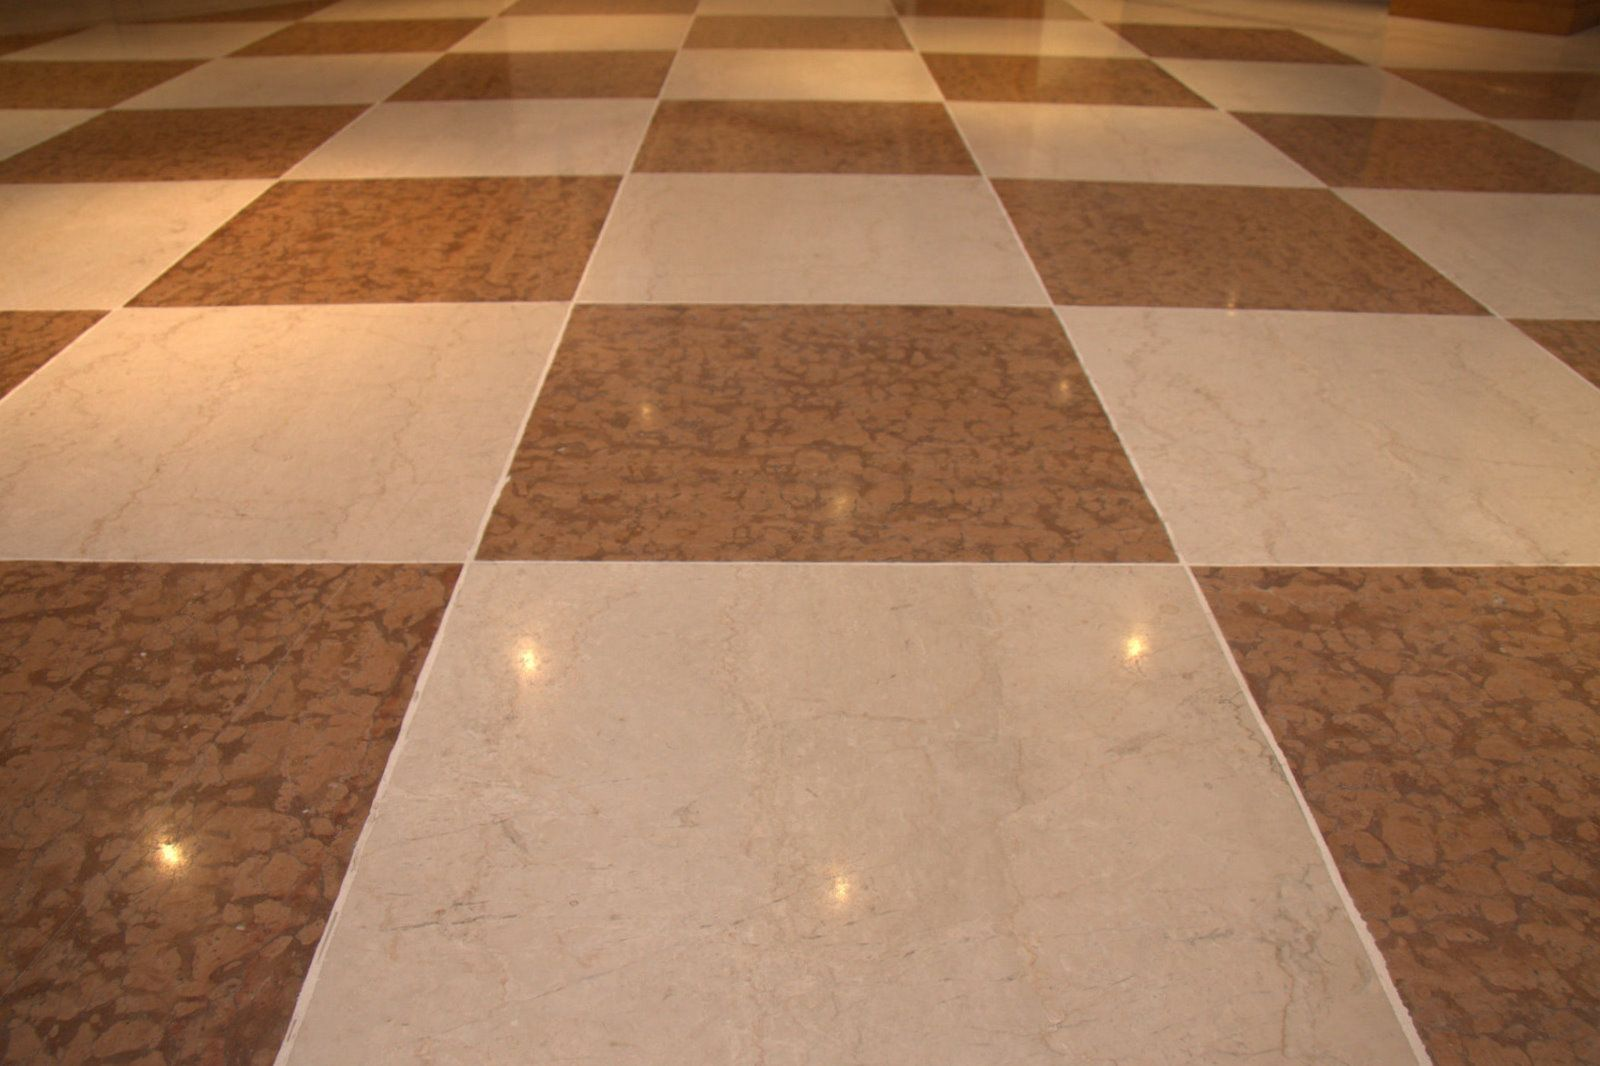 Hilton floor marble refurb for unique and innovative marble floor hilton floor marble refurb for unique and innovative marble floor inspiring design ideas dailygadgetfo Gallery